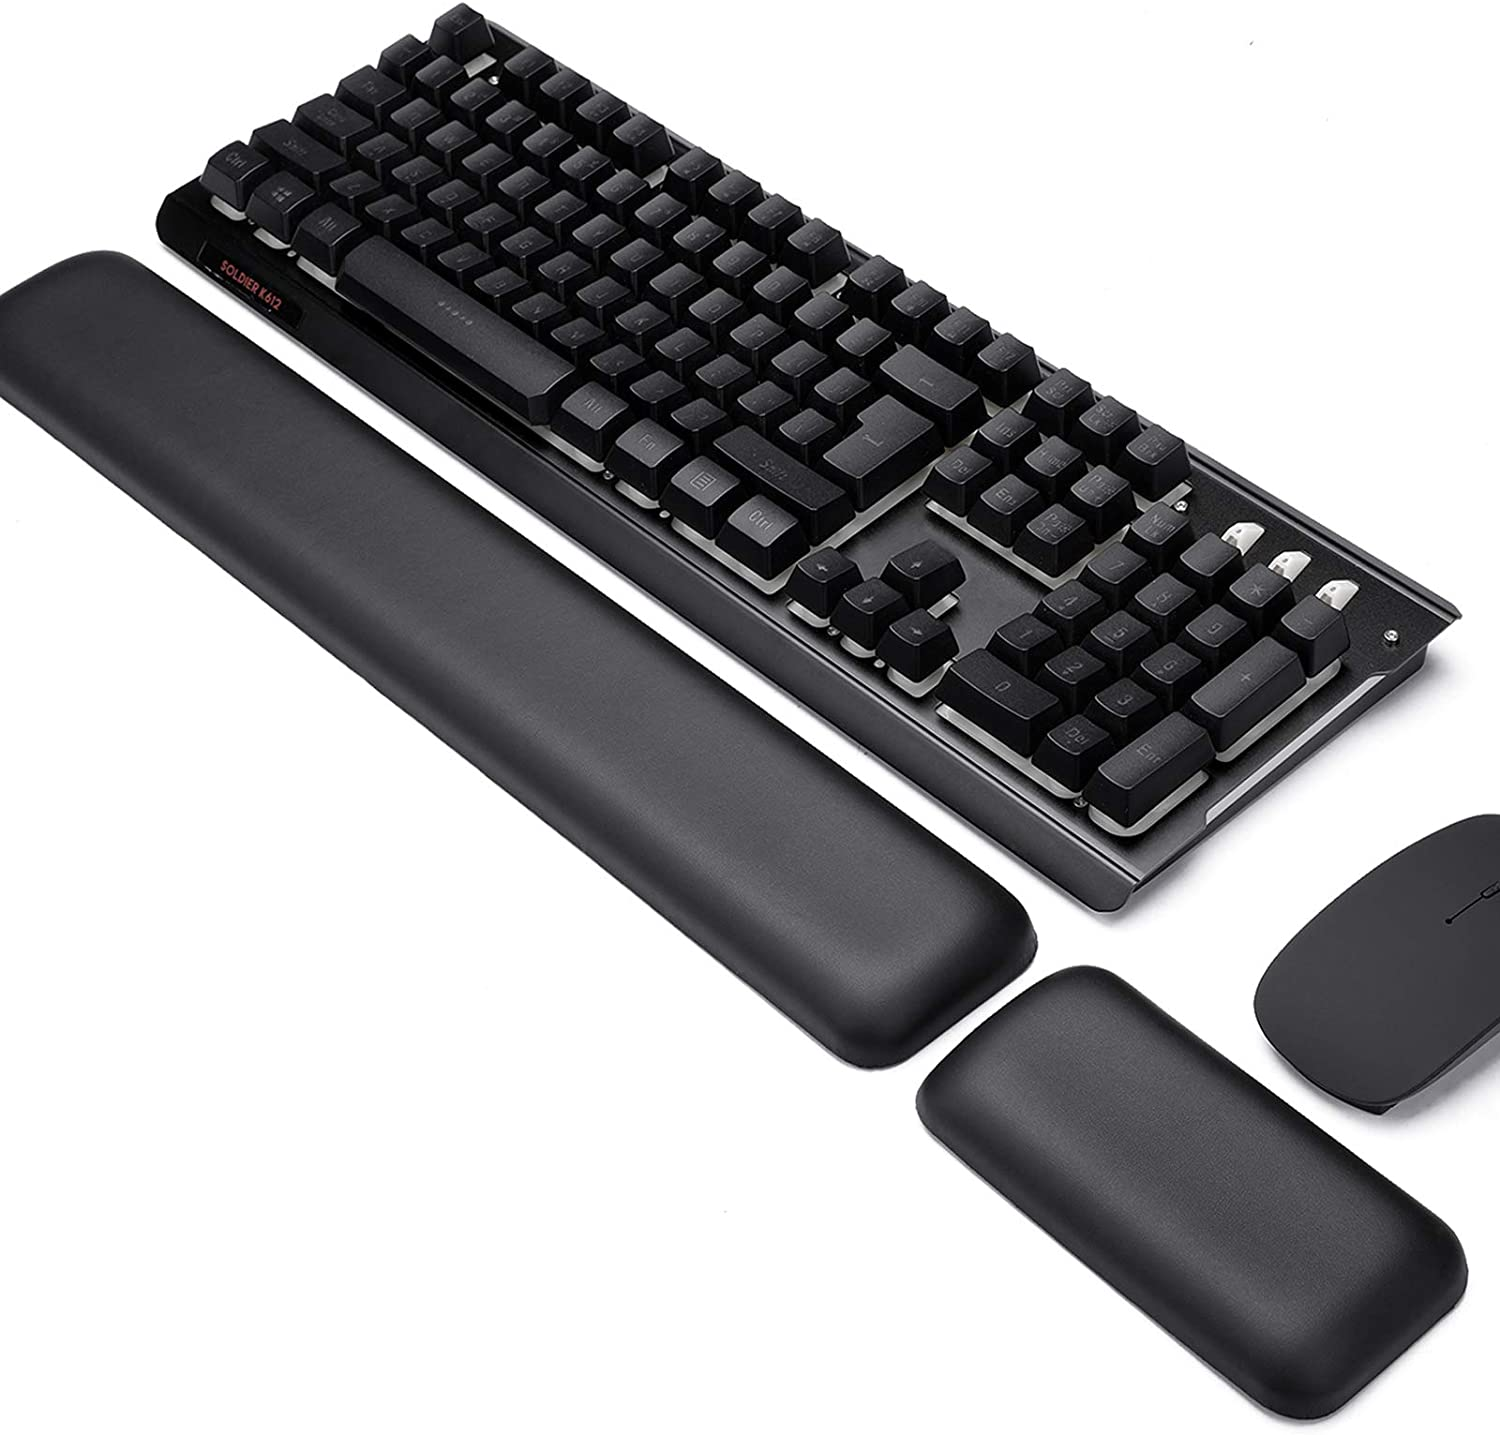 Leather-Gel Aelfox Keyboard Wrist Rest and Mouse Wrist Rest Set, Ergonomic Wrist Support Mouse Pad Wrist Pad Relieve Wrist Pain for Full Size Gaming Keyboard and Mouse, Laptop, Computer, Home, Office